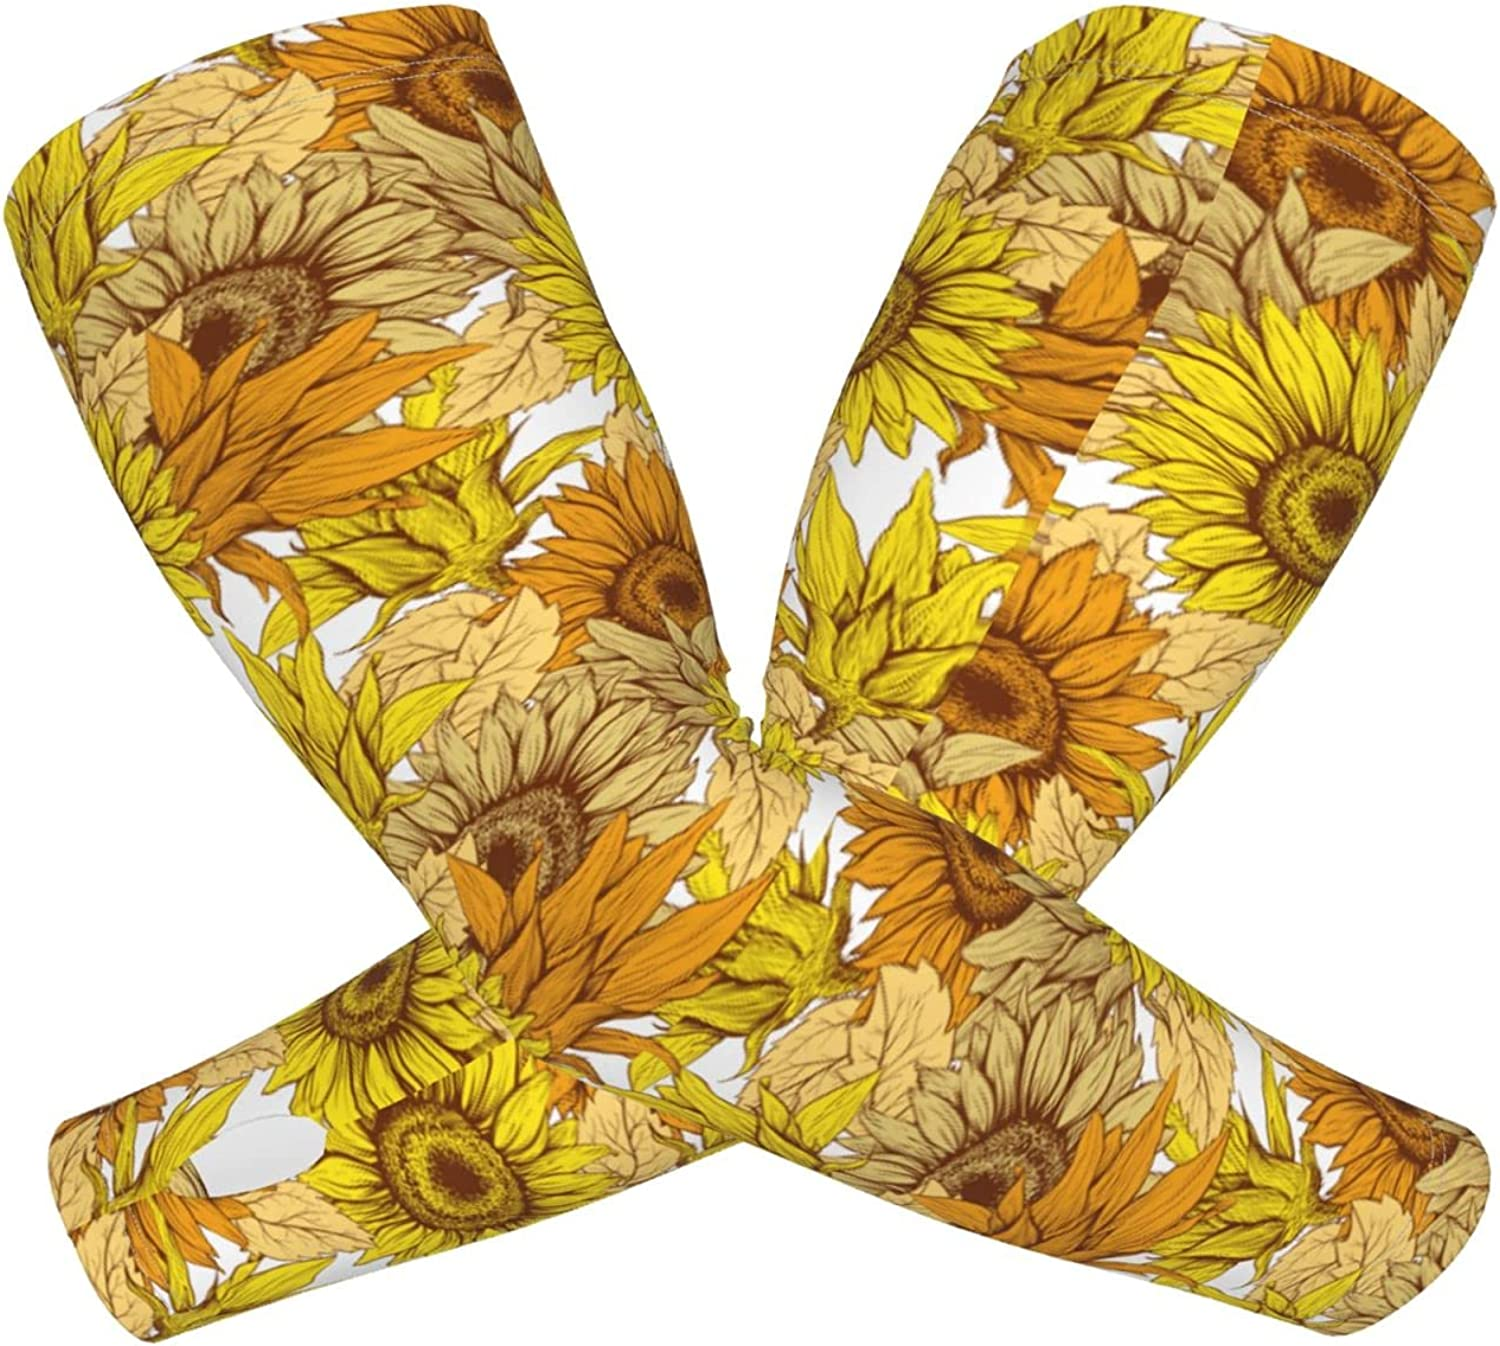 Unisex Sports Cooling Sleeves Fingerless Gloves Retro Sunflower Floral Print Sun Protection Arm Sleeves With Thumb Holes